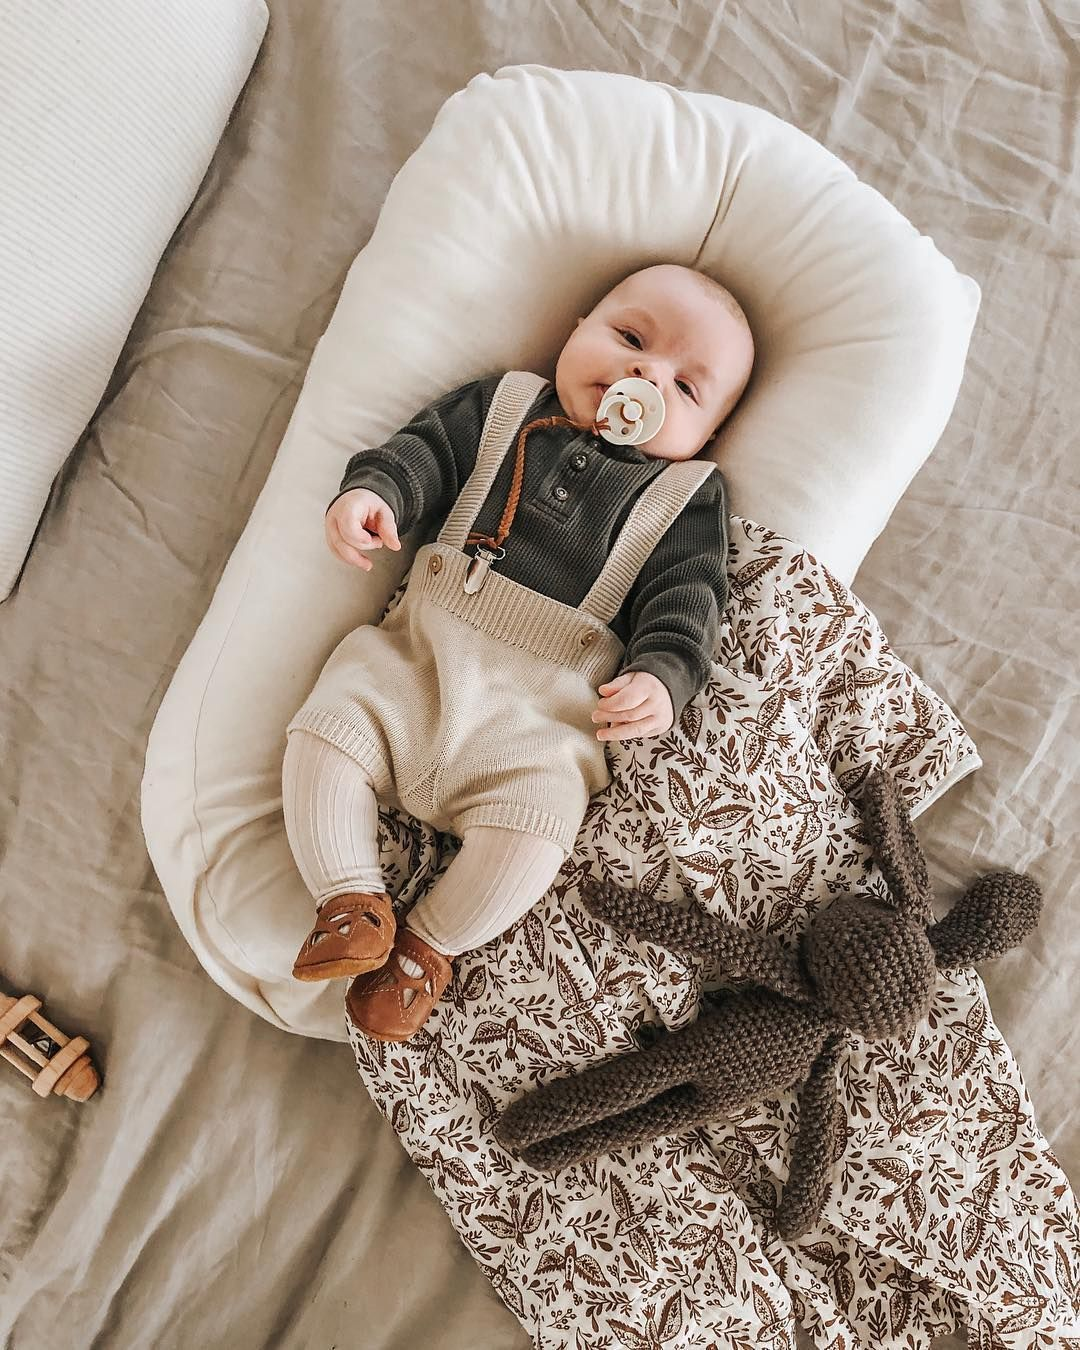 Baby Photography اجمل اطفال العالم بالصور Baby Girl Outfits Newborn Baby Boy Outfits Cute Baby Pictures